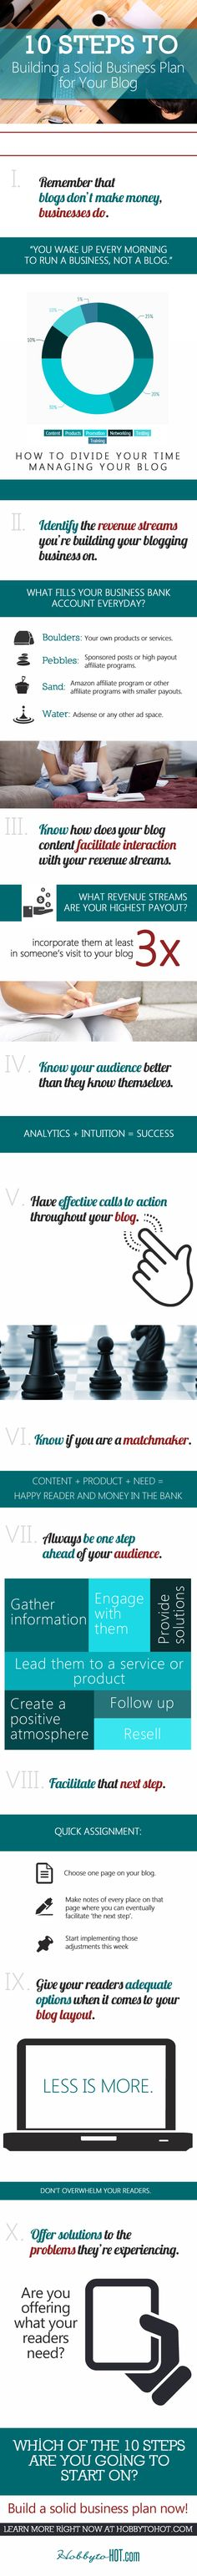 10 Keys to Making Your Business Blog Successful - Coaching Blog